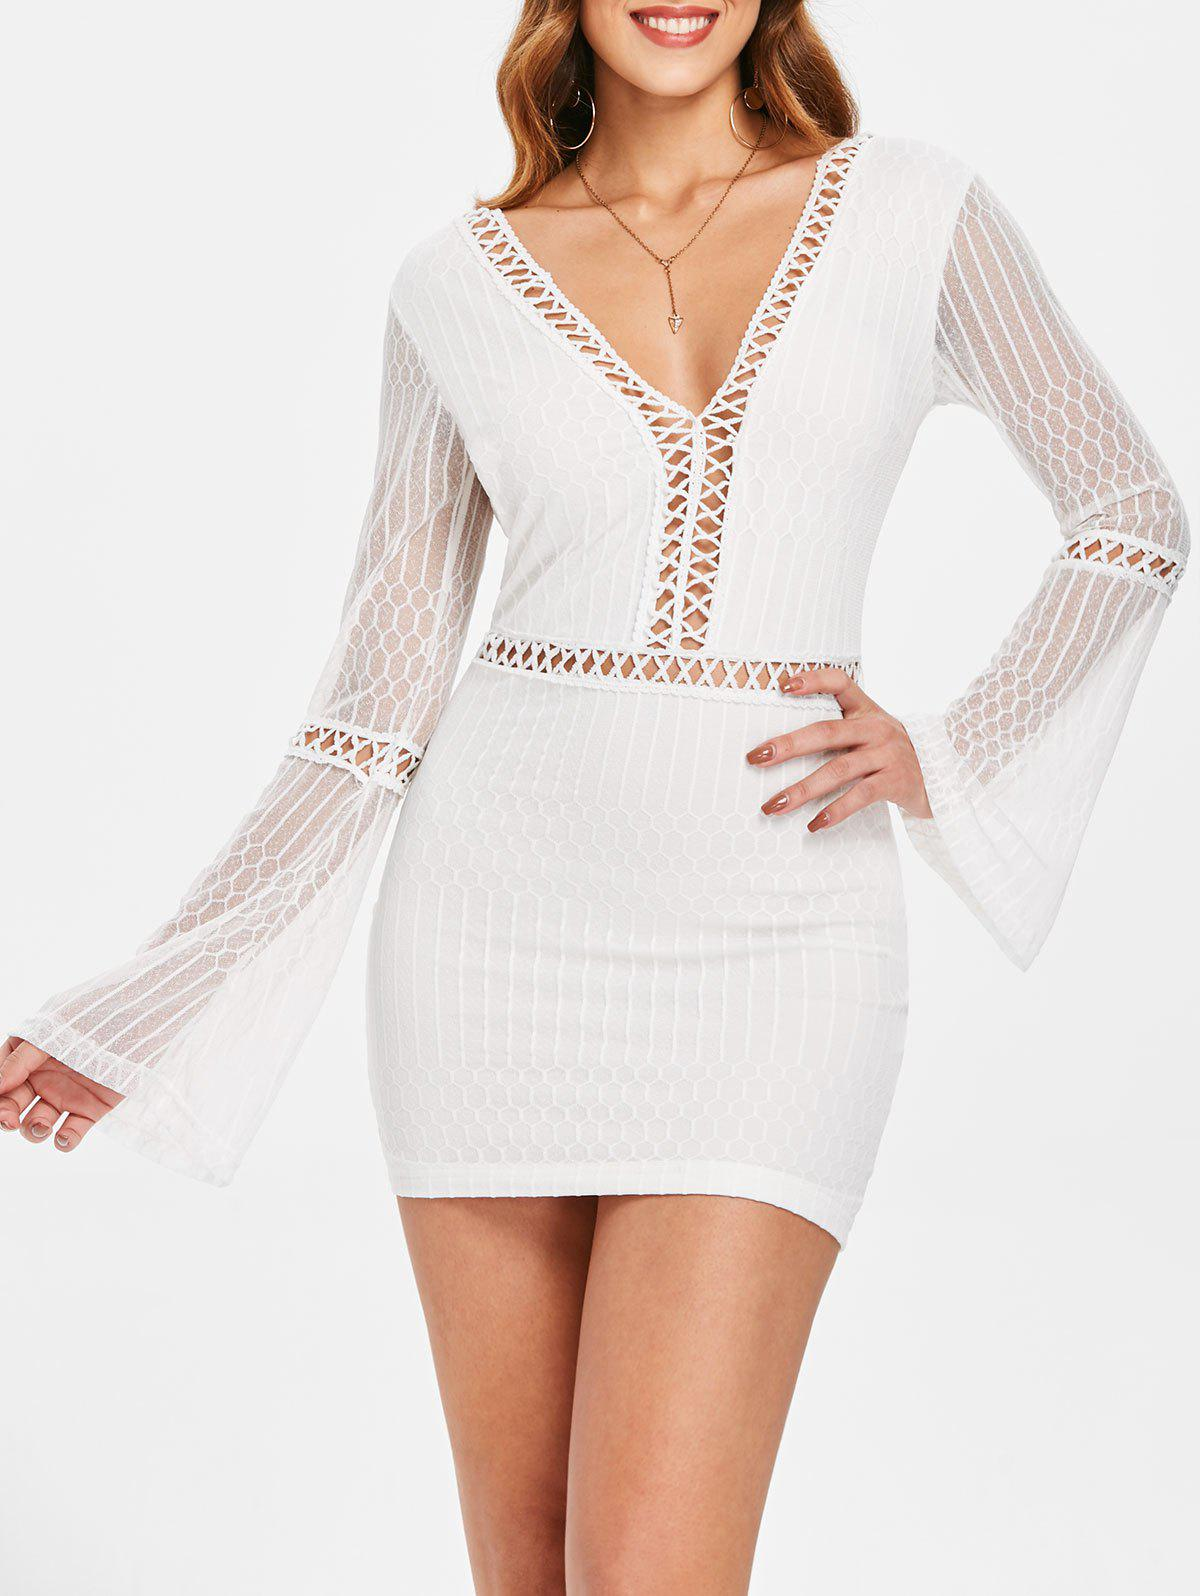 Flare Sleeve Backless Bodycon Dress - MILK WHITE S